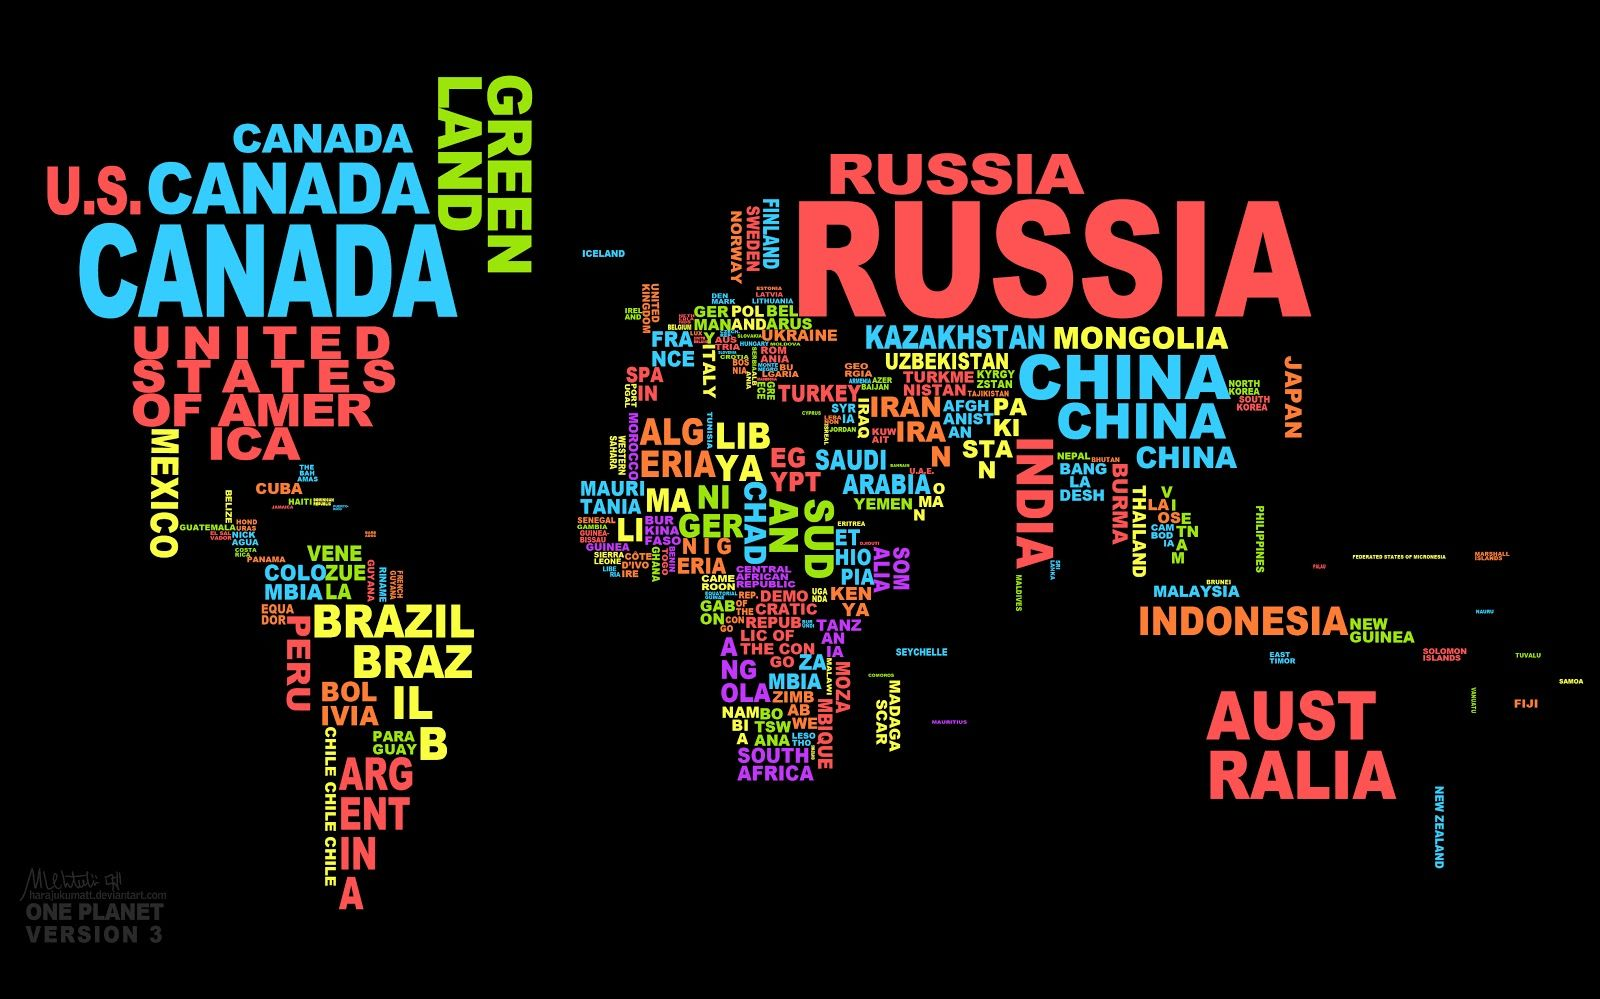 Wallpaper for world map using country name on badooy wallpapers wallpaper for world map using country name on badooy wallpapers gumiabroncs Images